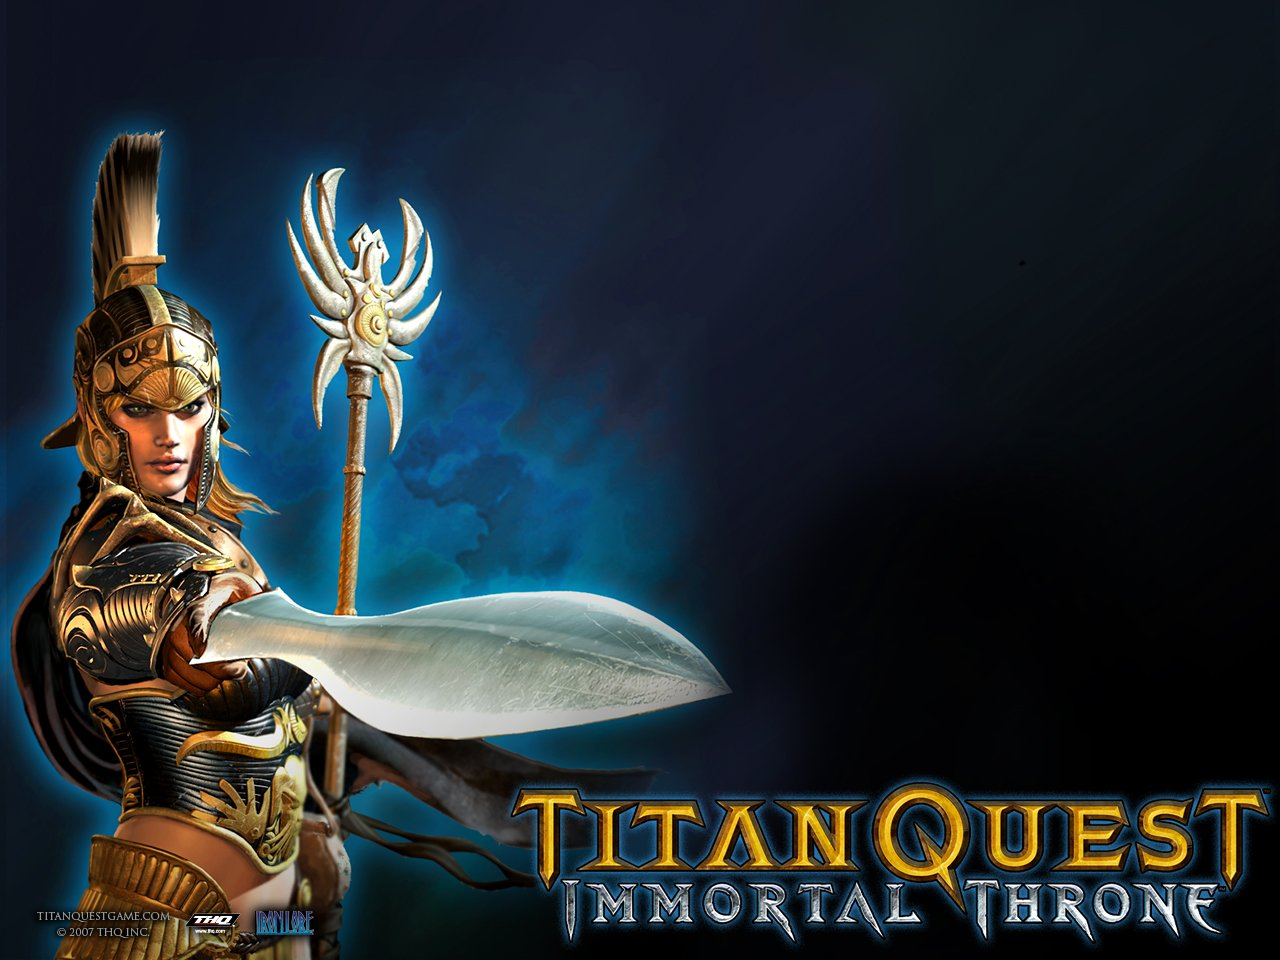 Titan Quest Immortal Throne.